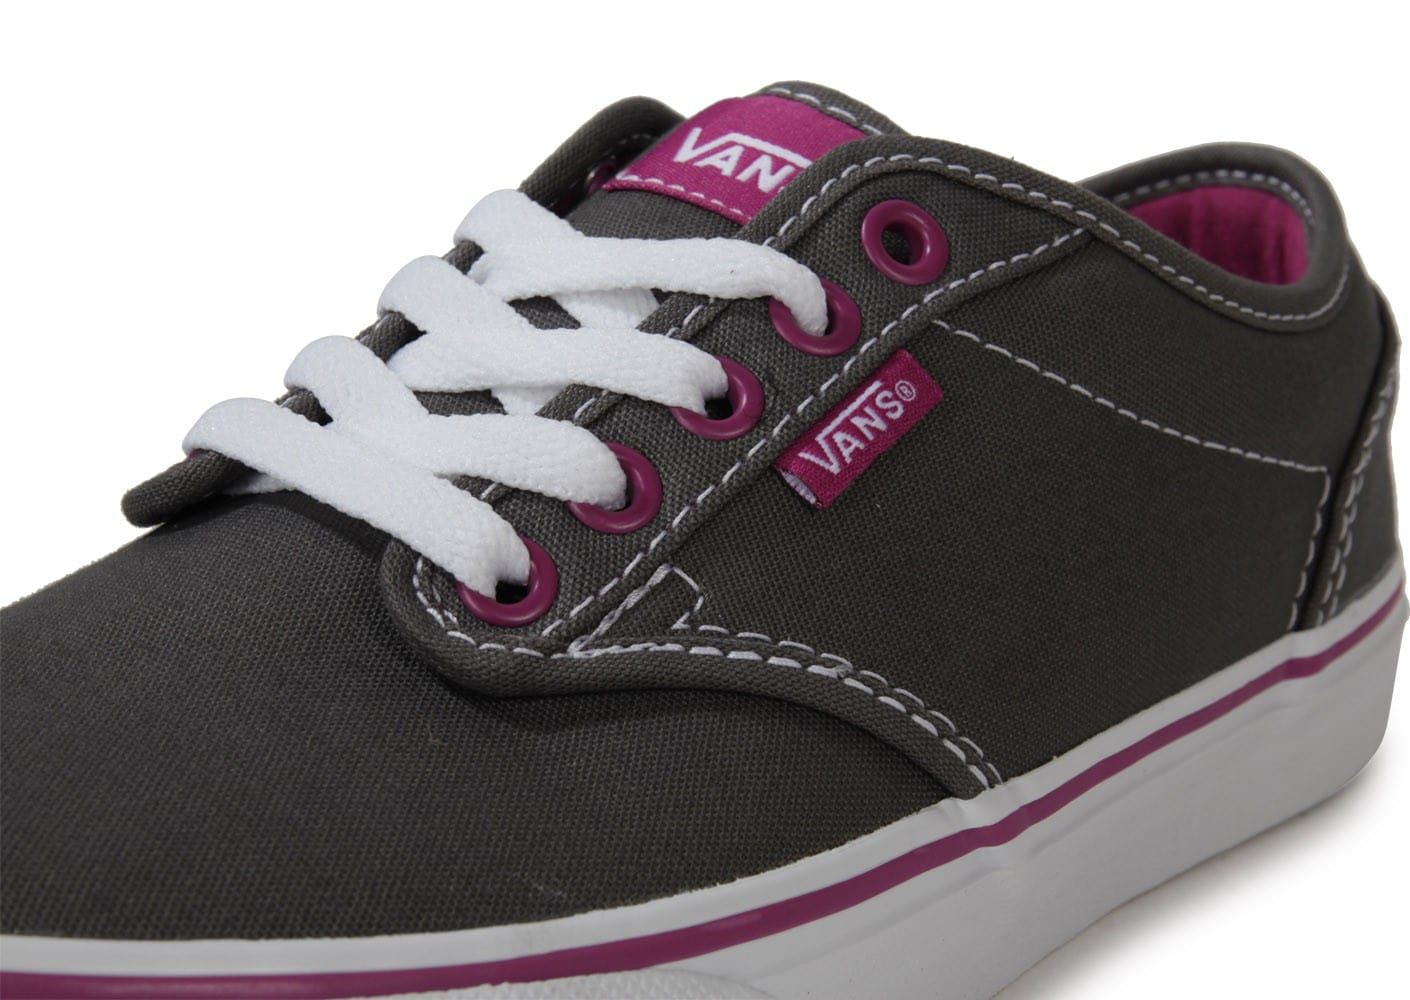 Vans Atwood Toile Grise Chaussures Chaussures Chausport